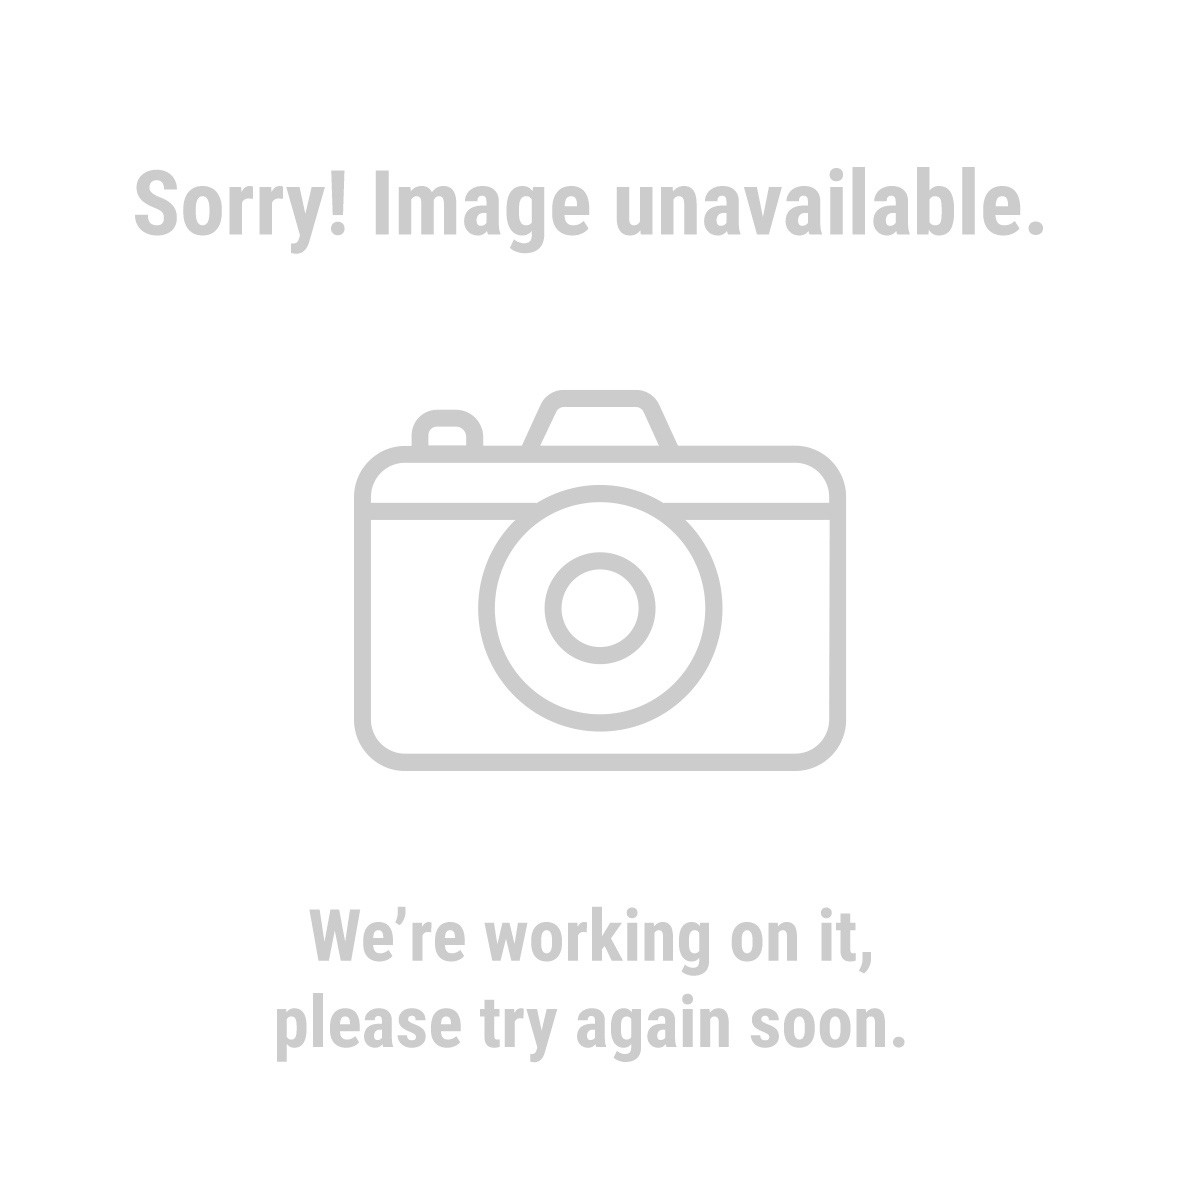 Haul-Master® 62639 10 in. Worry Free Tire with Polyurethane Hub